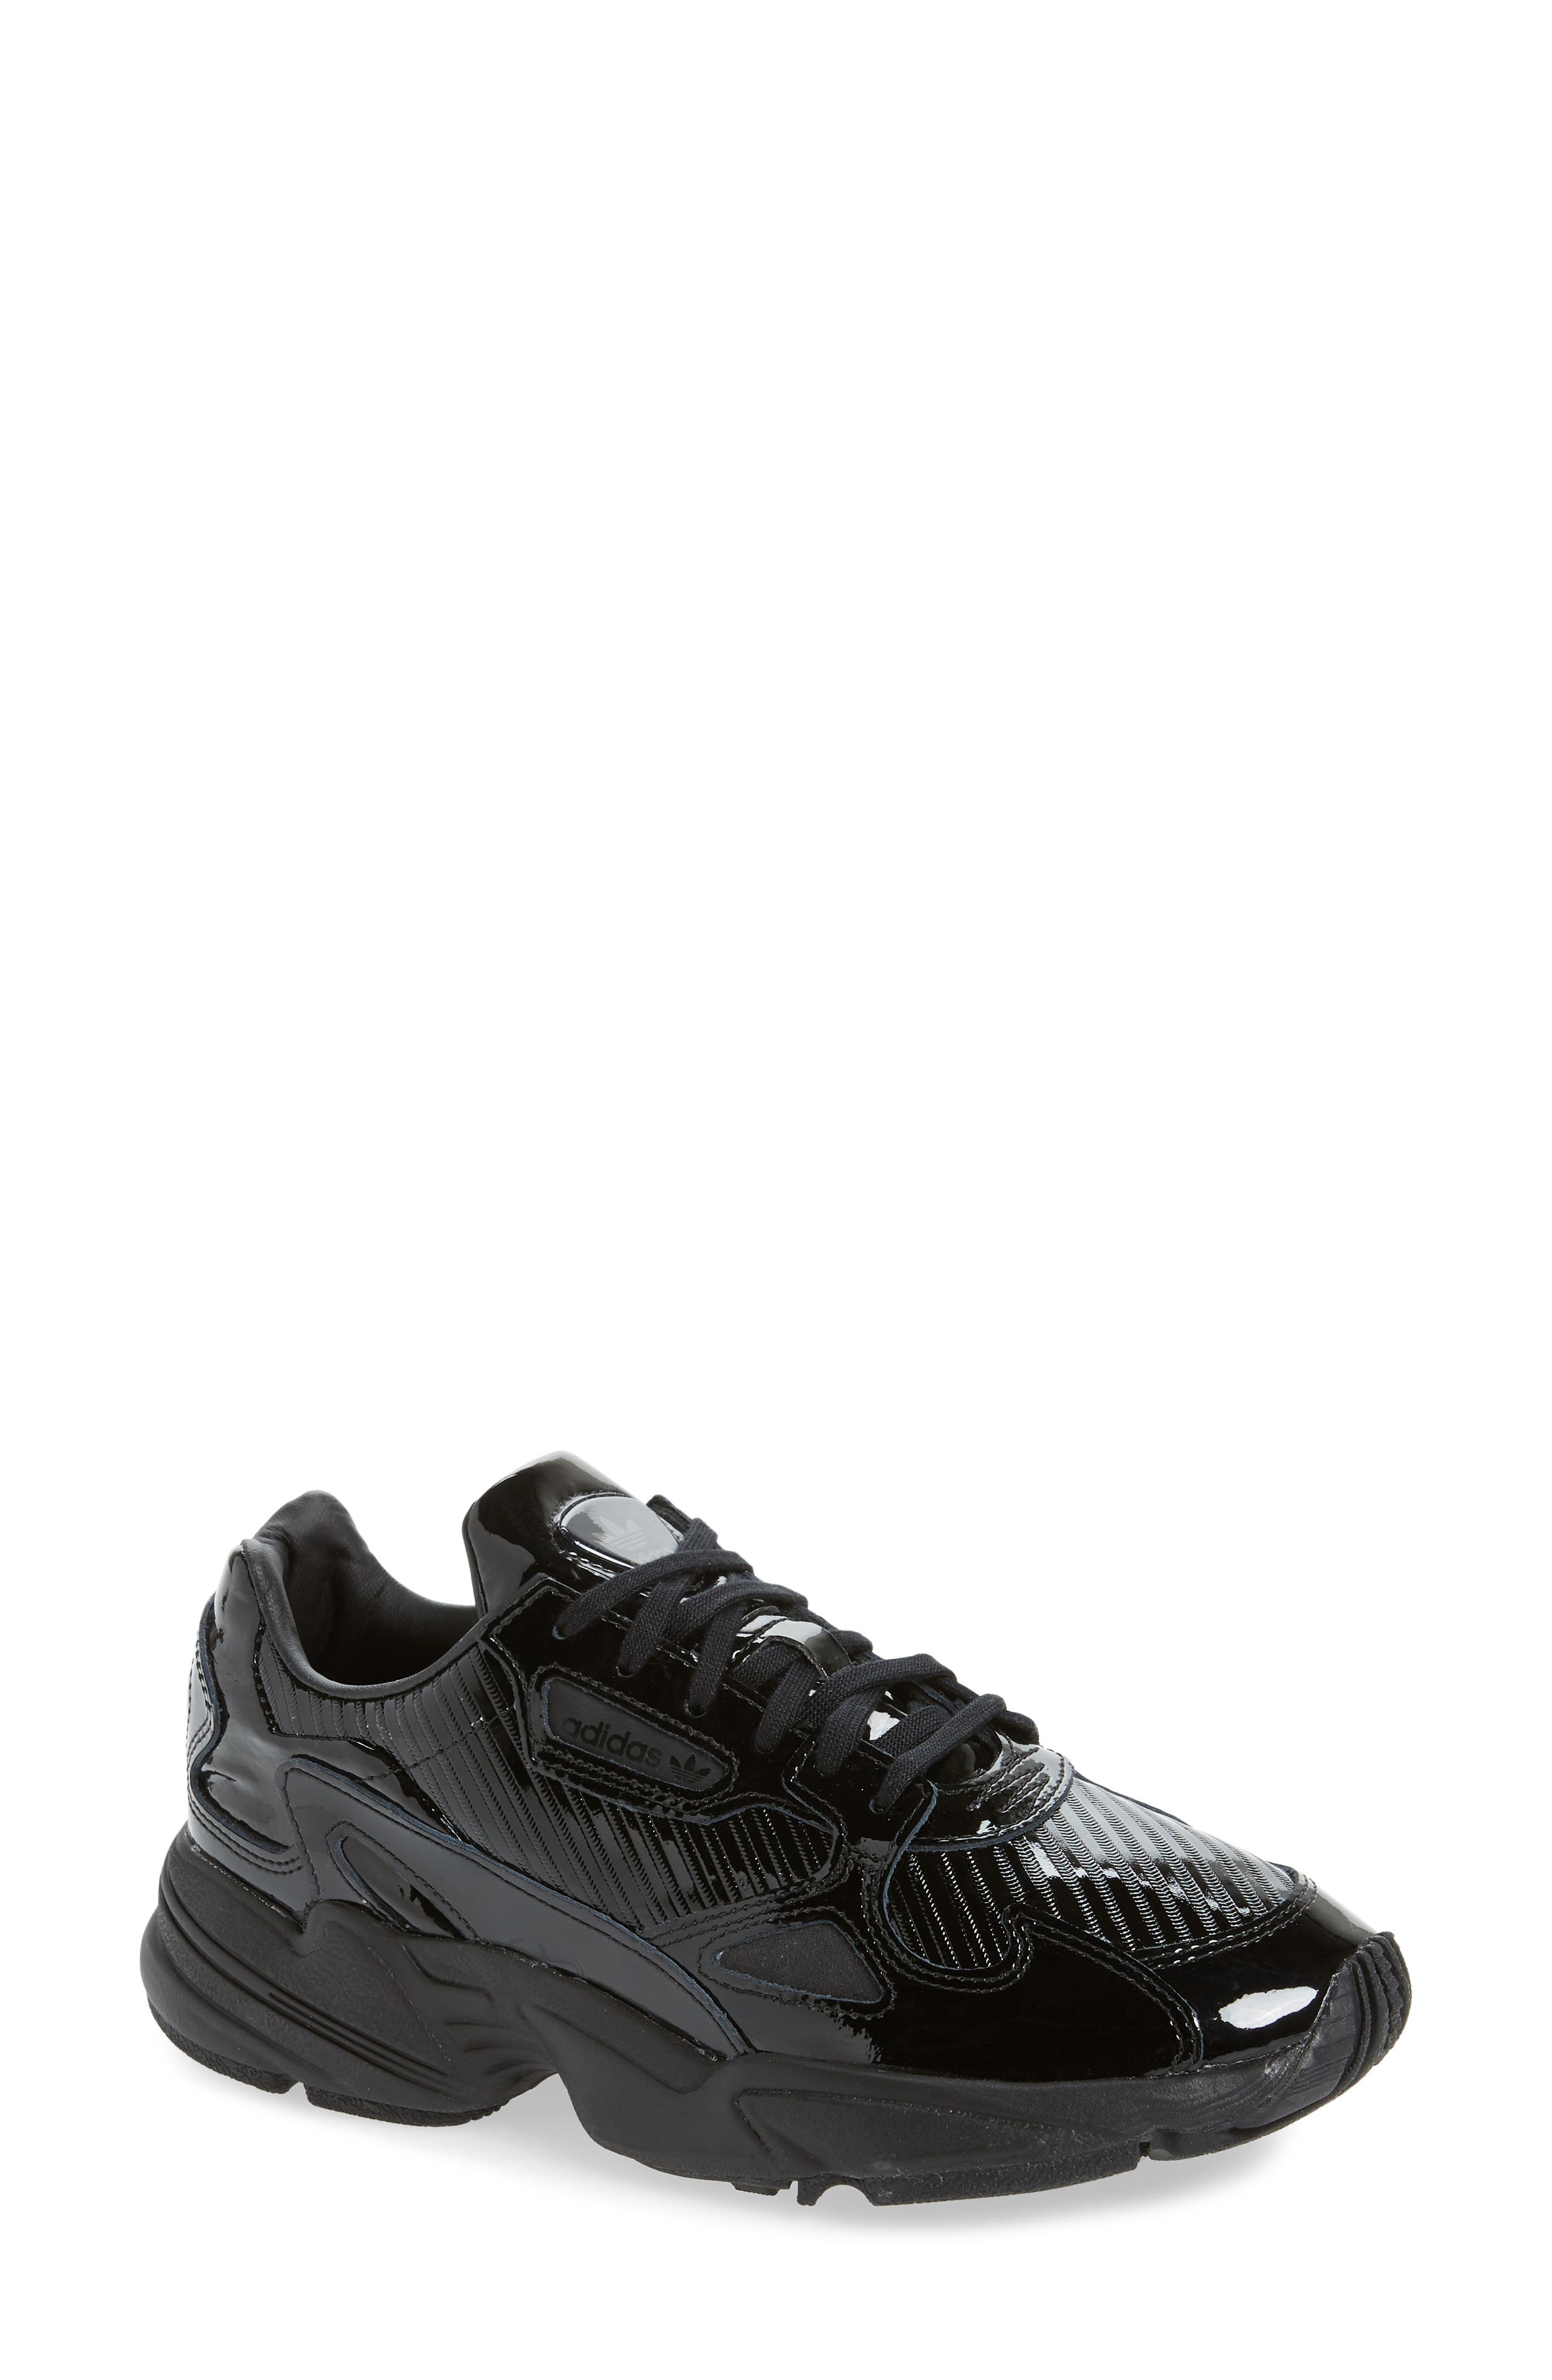 Adidas Falcon Out Loud Sneakers, Black